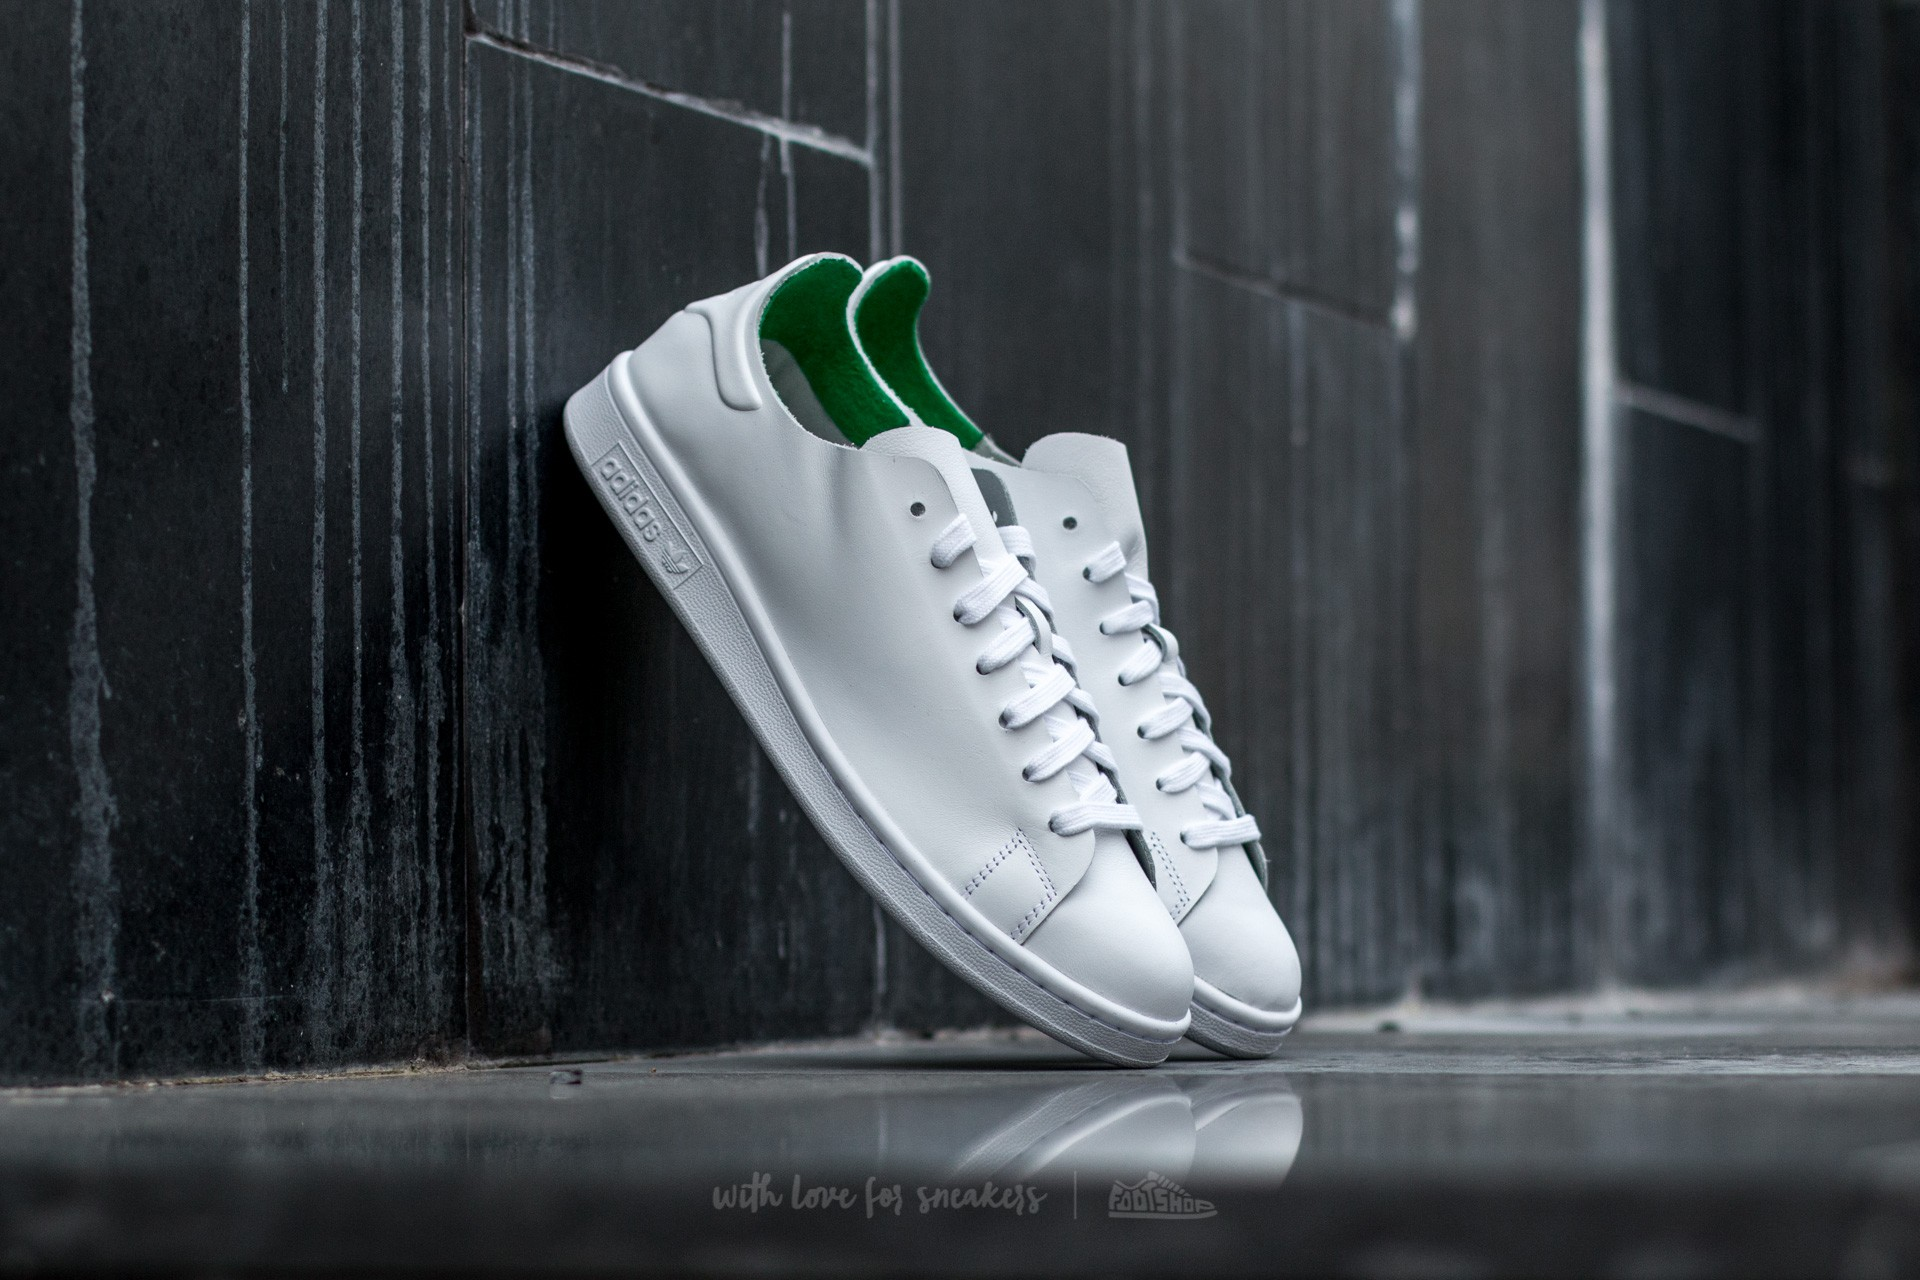 adidas Stan Smith Nuude W Ftw White/ Ftw White/ Green Footshop – FR